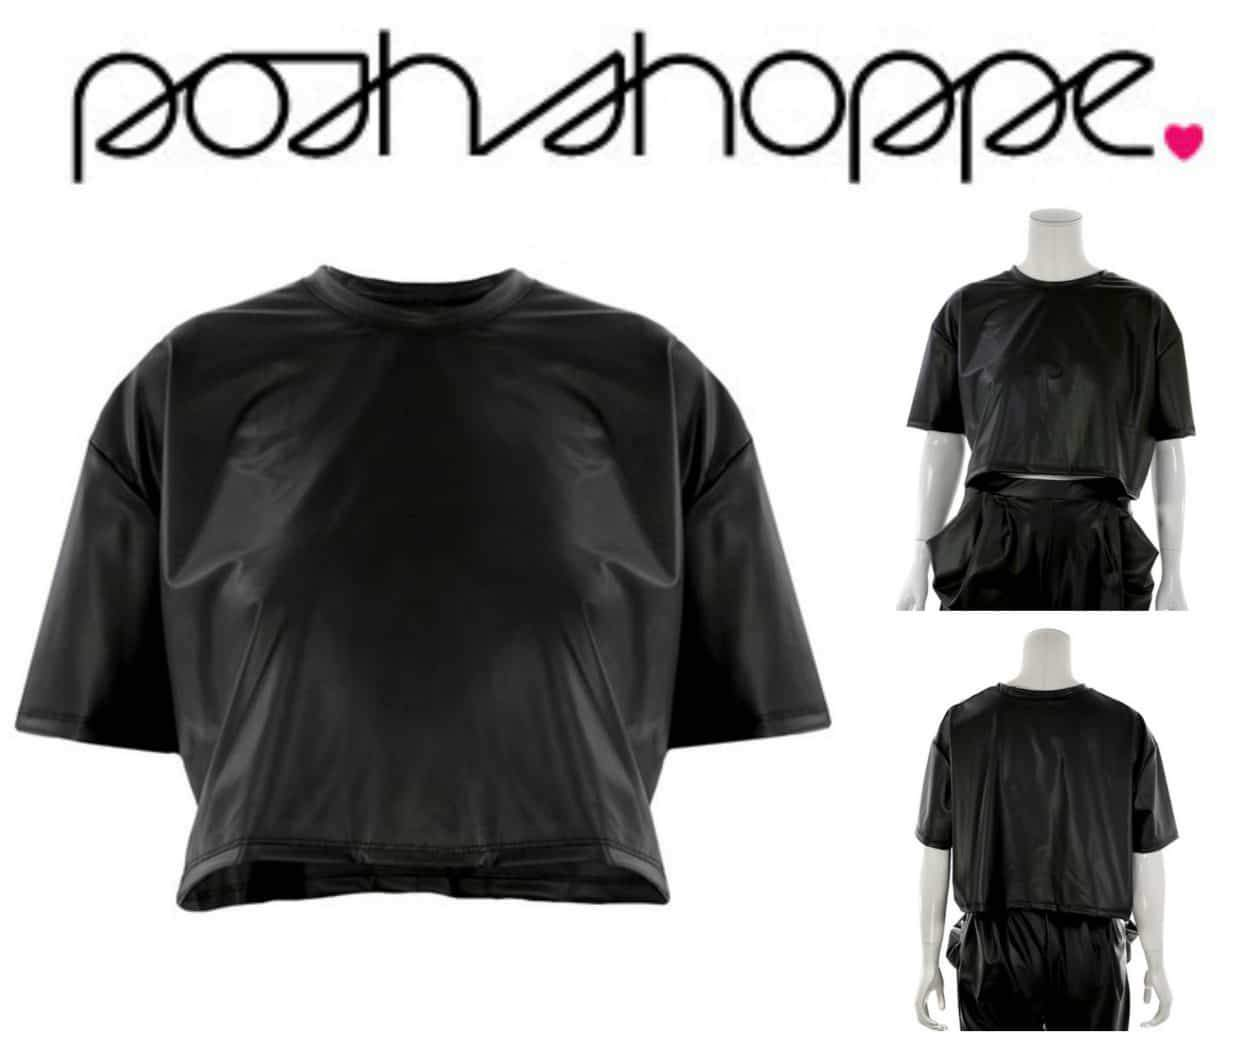 Gotta Have It: This Faux Leather Crop Top from Posh Shoppe